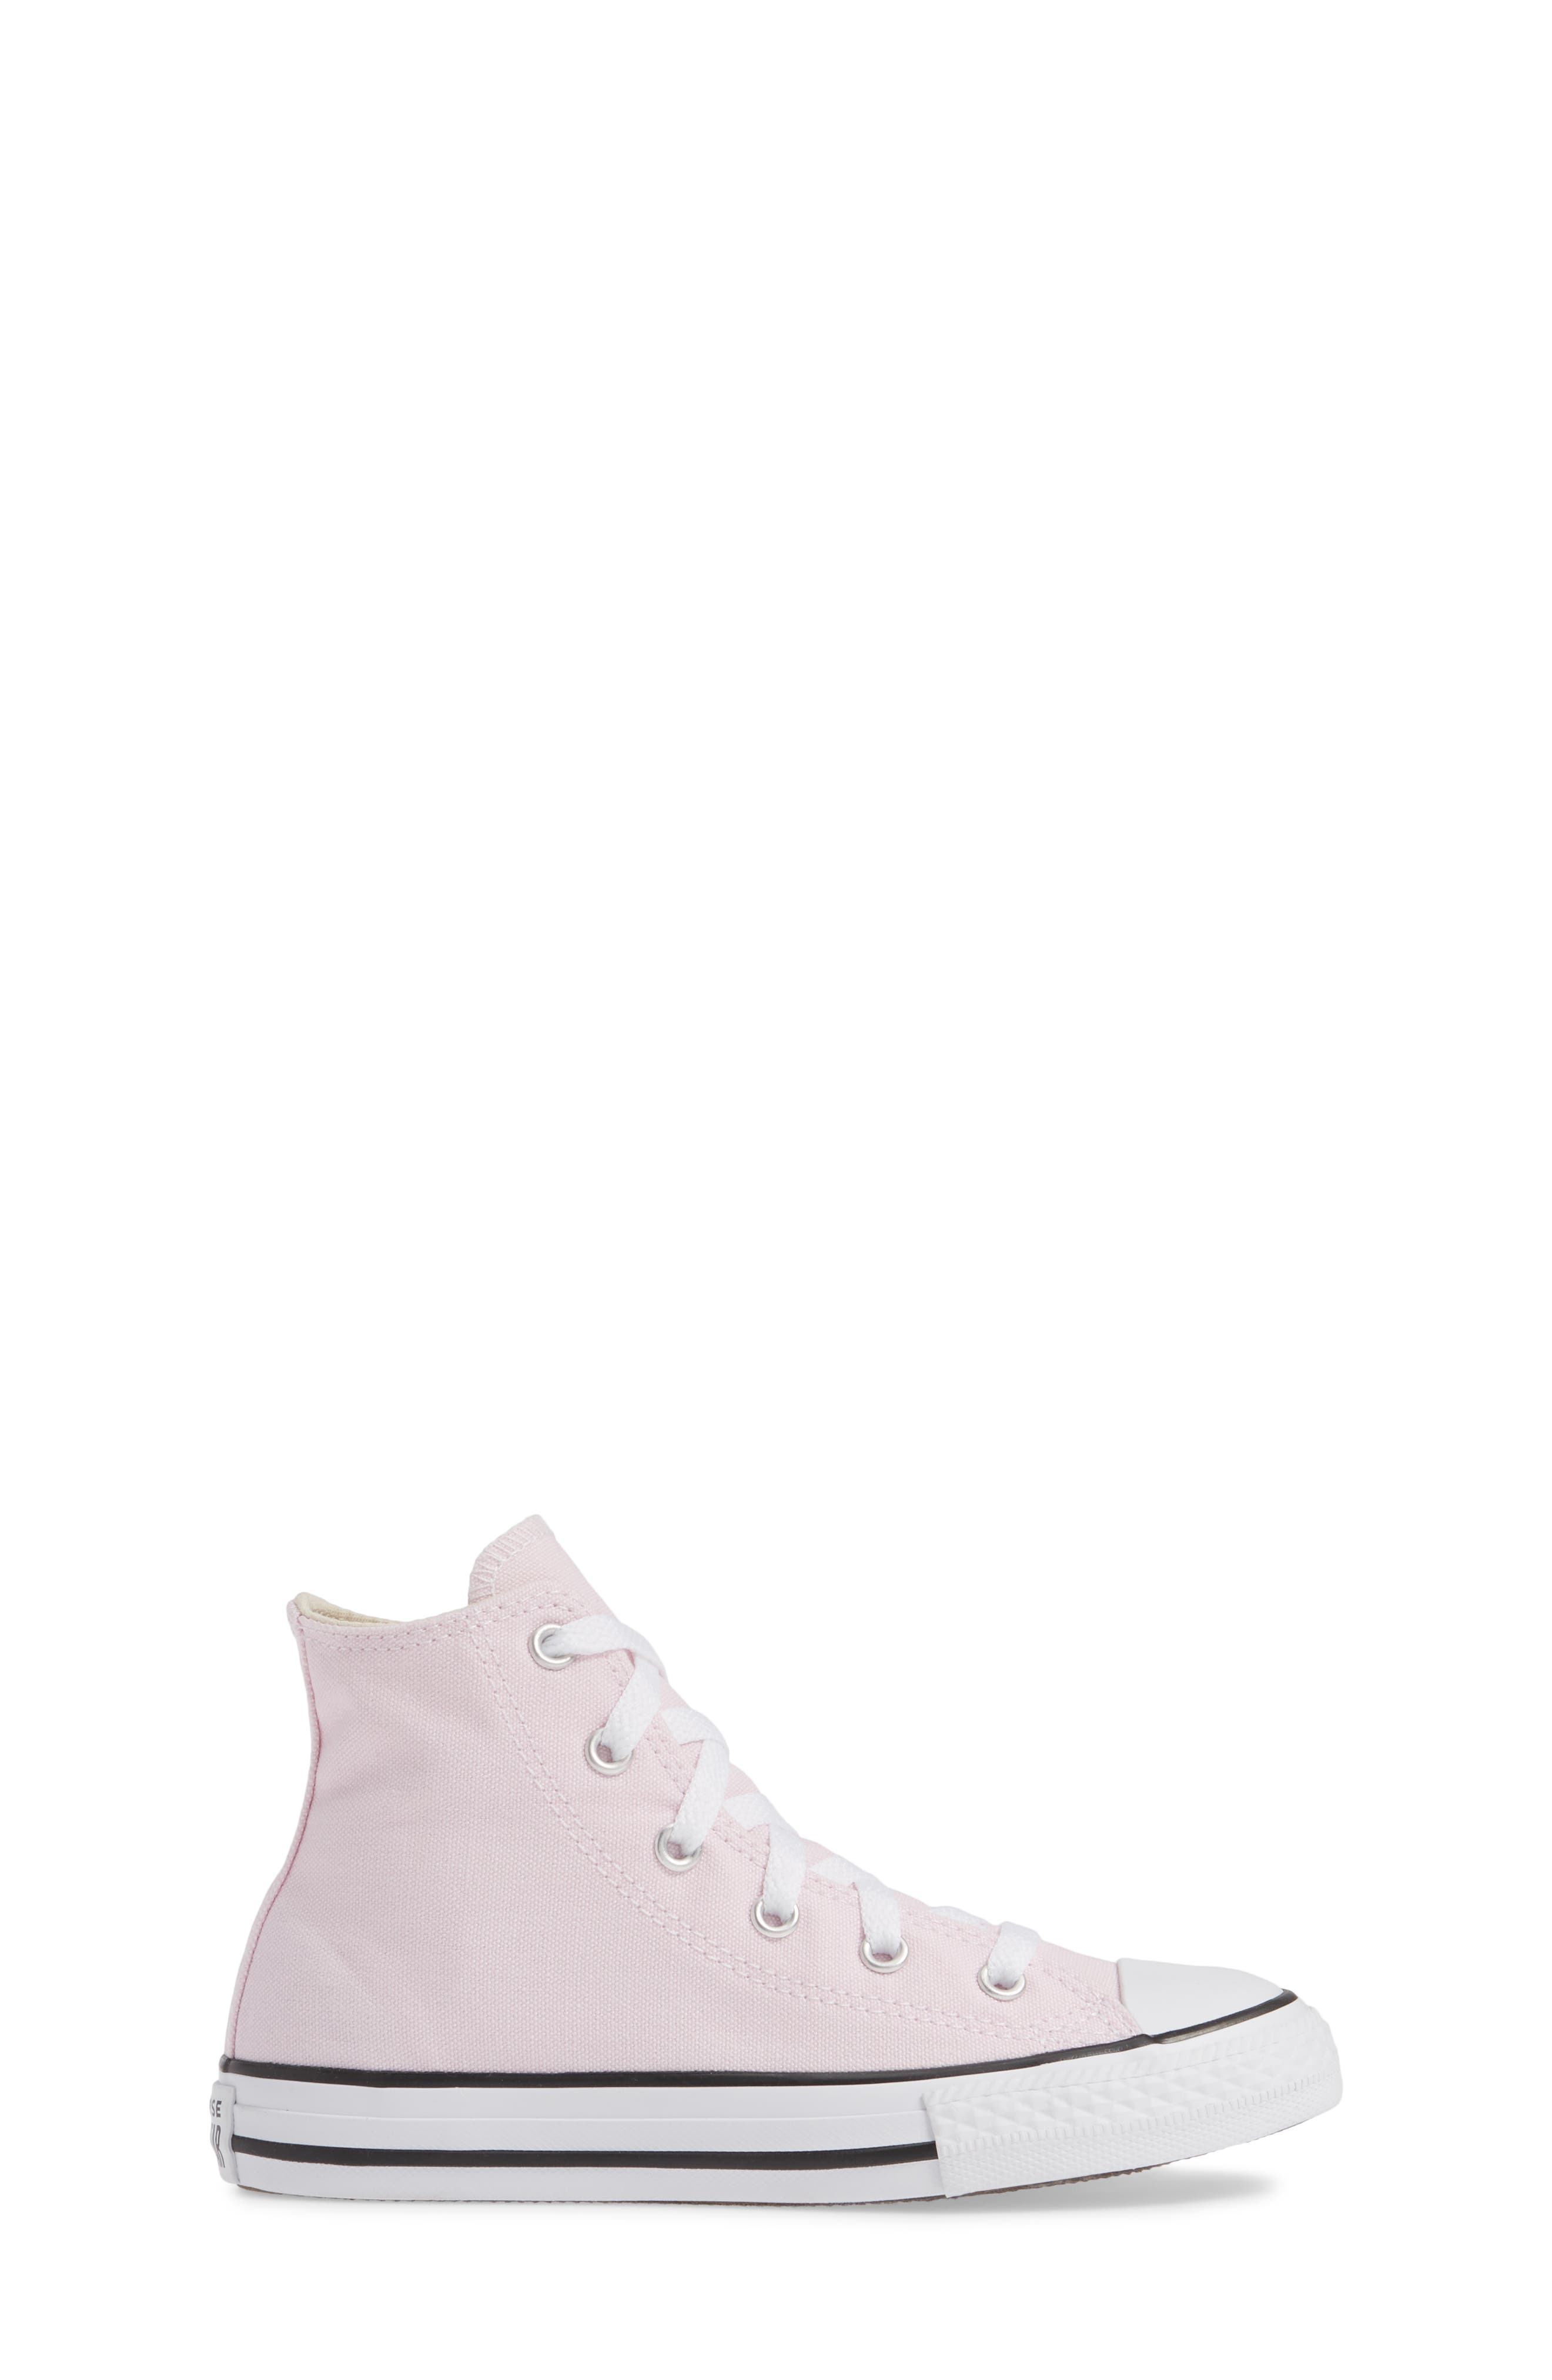 ,                             Chuck Taylor<sup>®</sup> High Top Sneaker,                             Alternate thumbnail 3, color,                             PINK FOAM/ IVORY/ WHITE